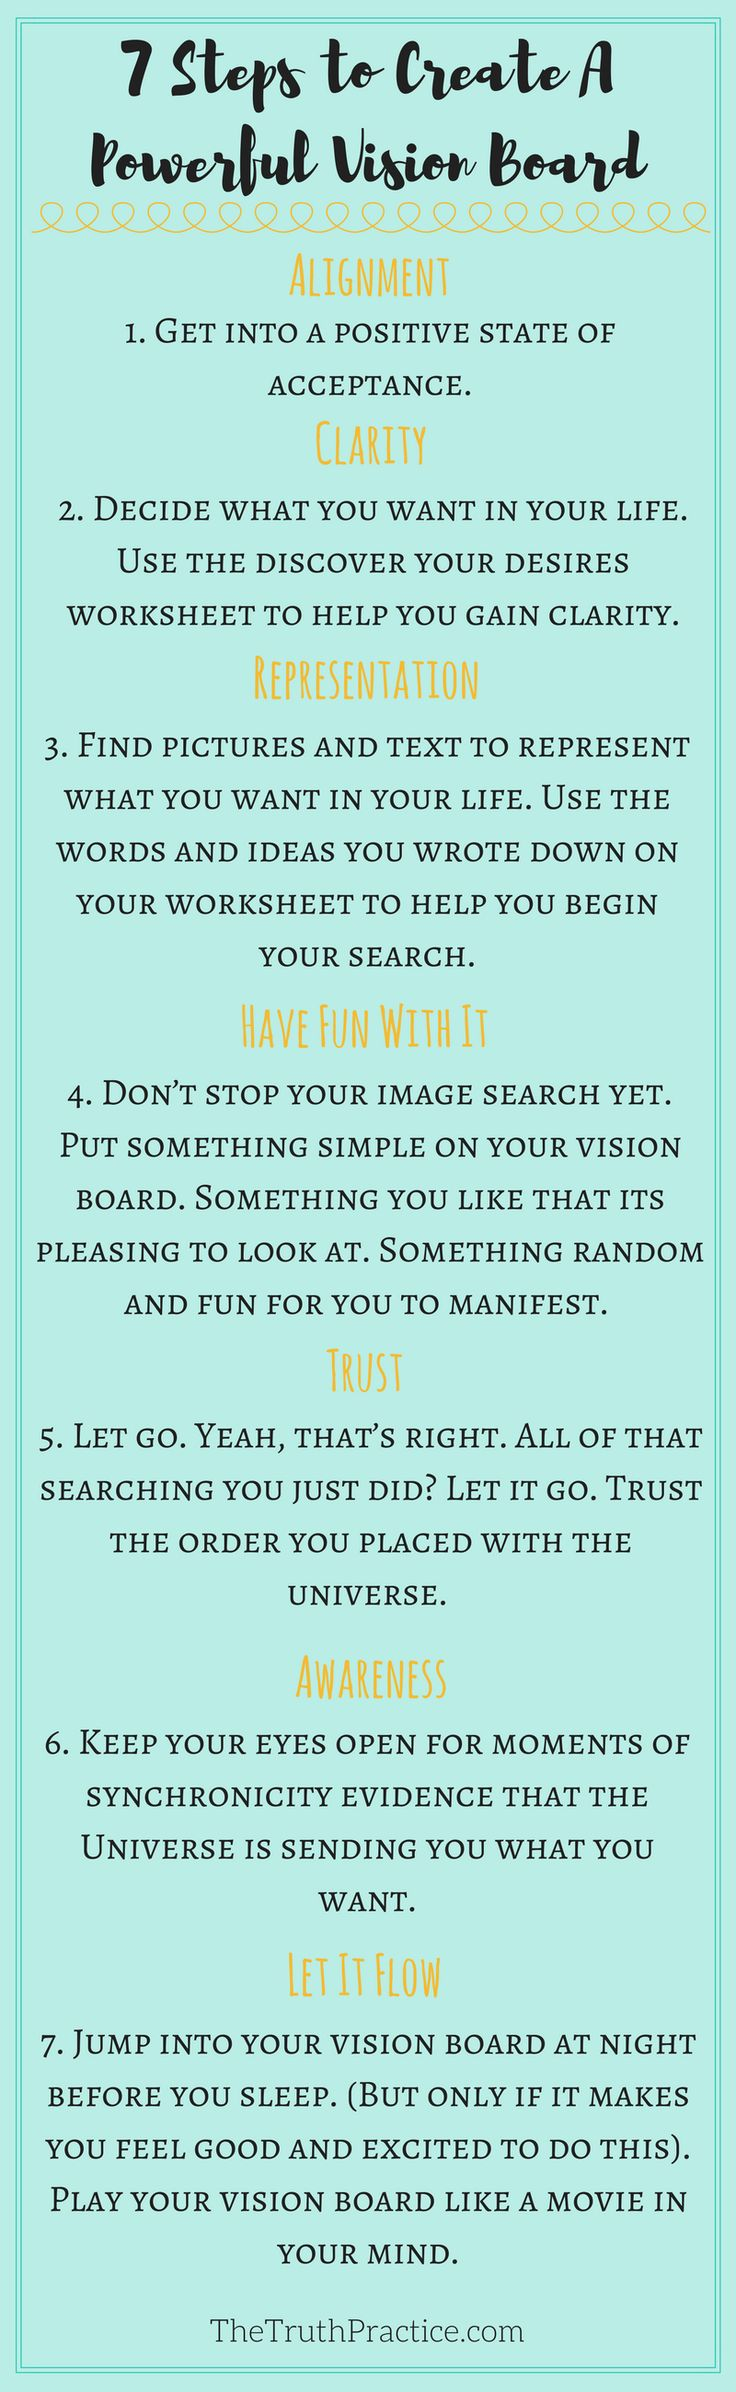 How many times have you heard of someone who made a vision board, forgot about it, and years later realized all of their dreams came true? Well, it isn't exactly that simple. Click here to find out the steps to making your own powerful vision board and get your free printable to help you define your deepest desires. These steps to a powerful vision board have helped me, and I hope they help you too! Go to TheTruthPractice.com to read more about inspiration, authenticity, fulfillment...